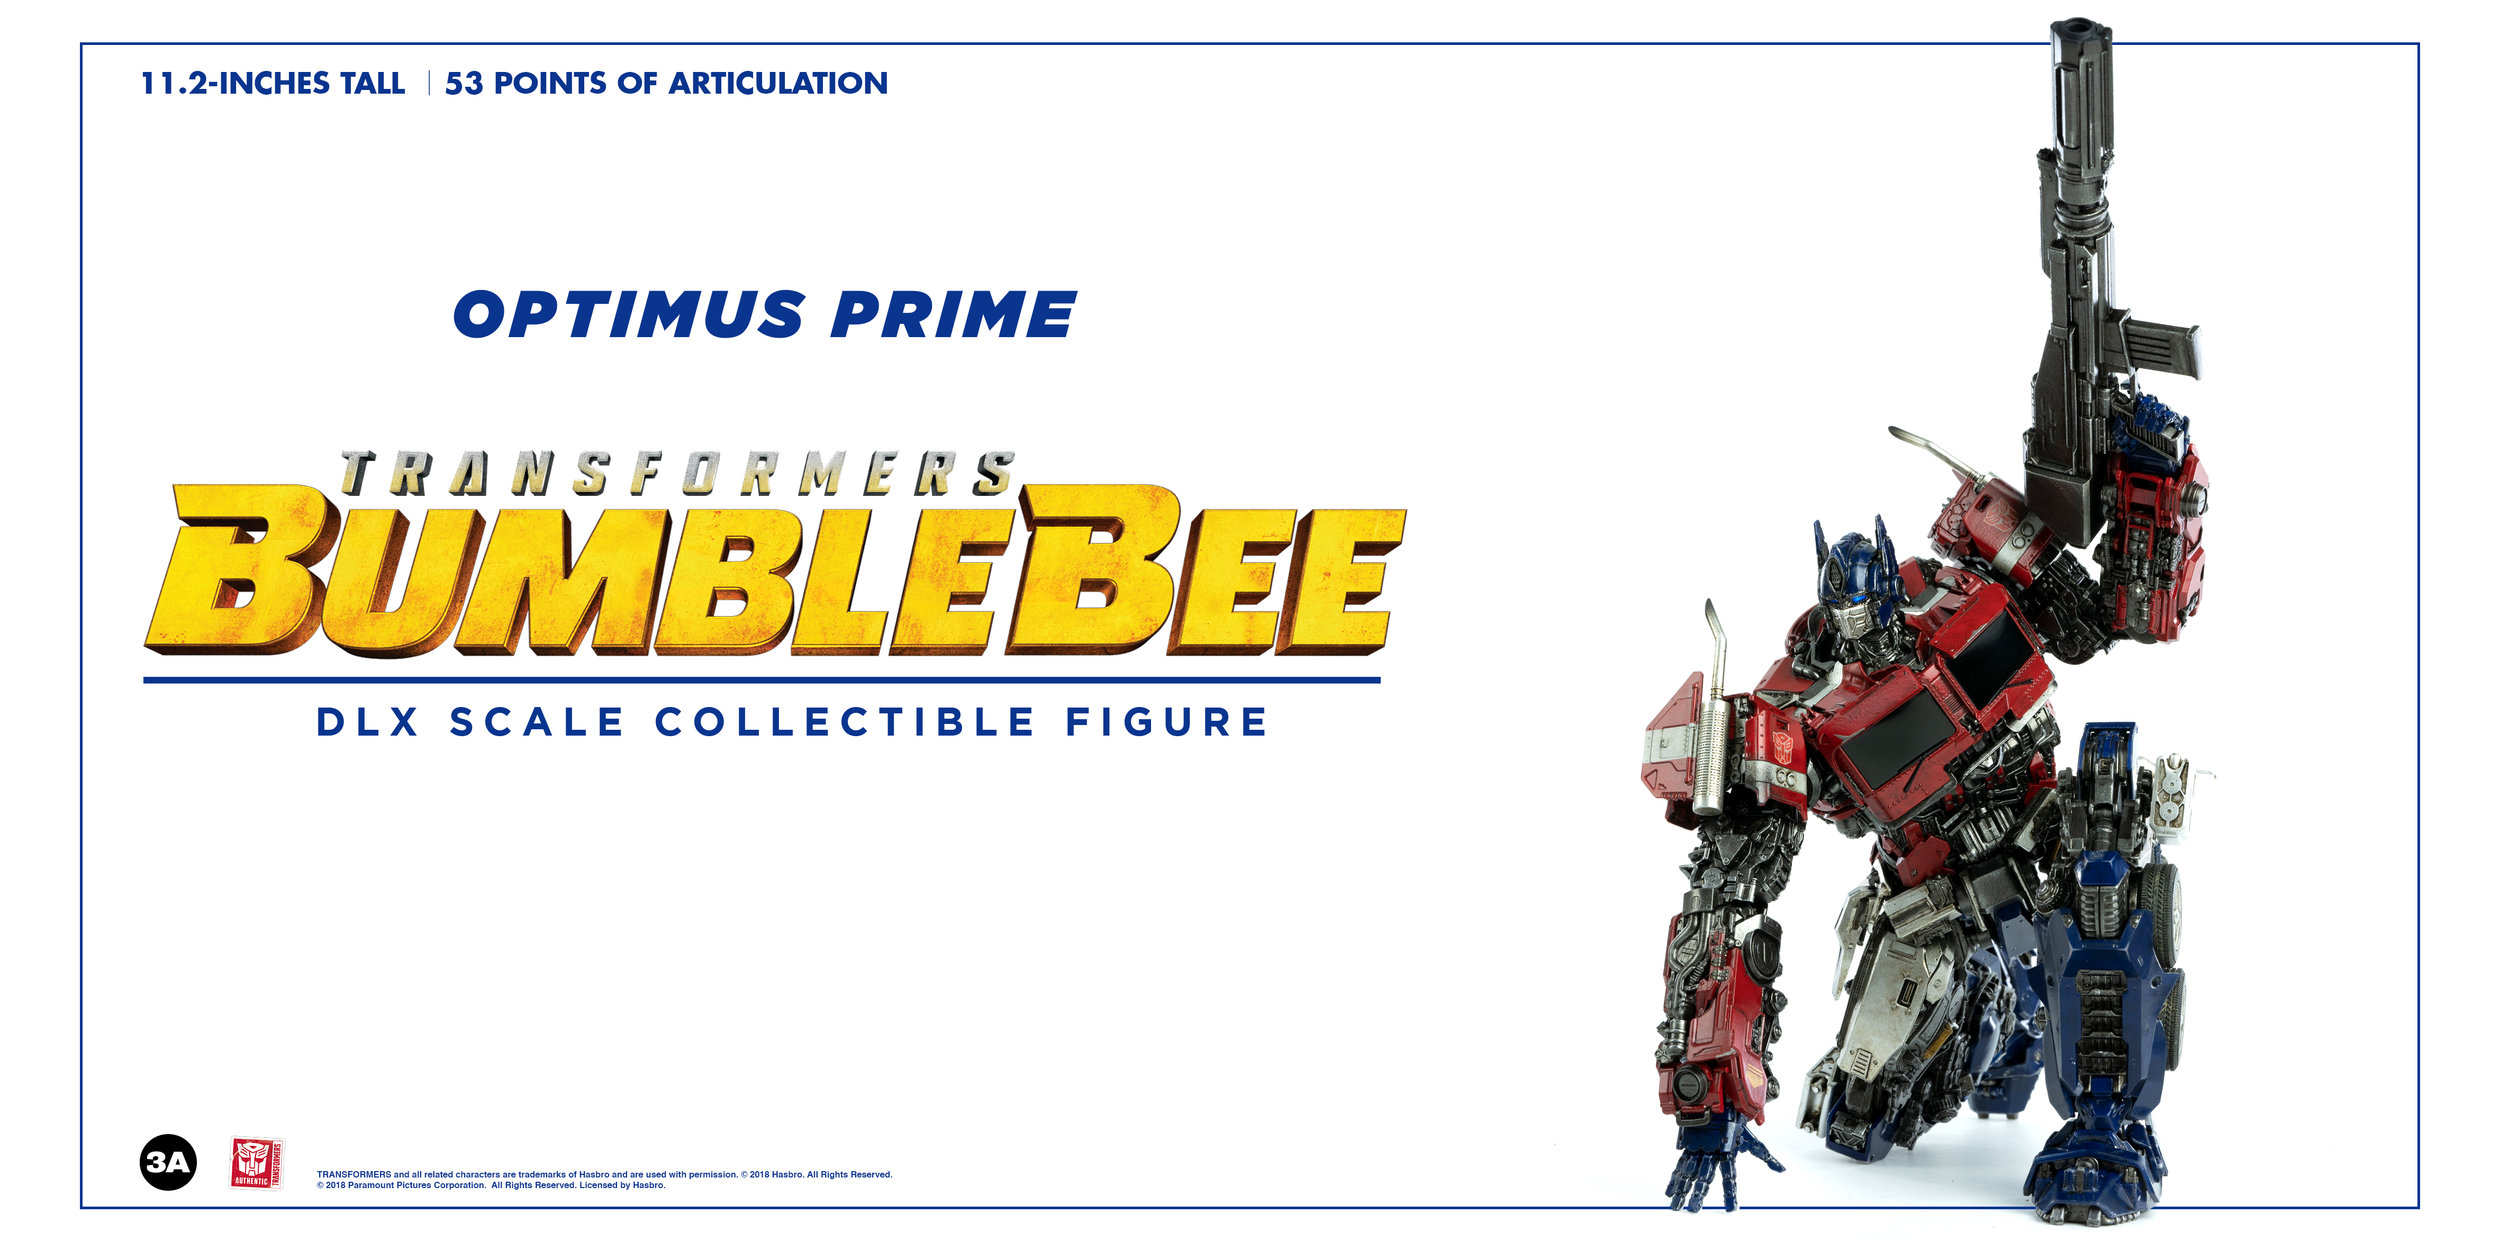 Transformers Bumblebee DLX and Premium Scale Collectible Figures  - Page 2 OP_DLX_ENG_5986_wide